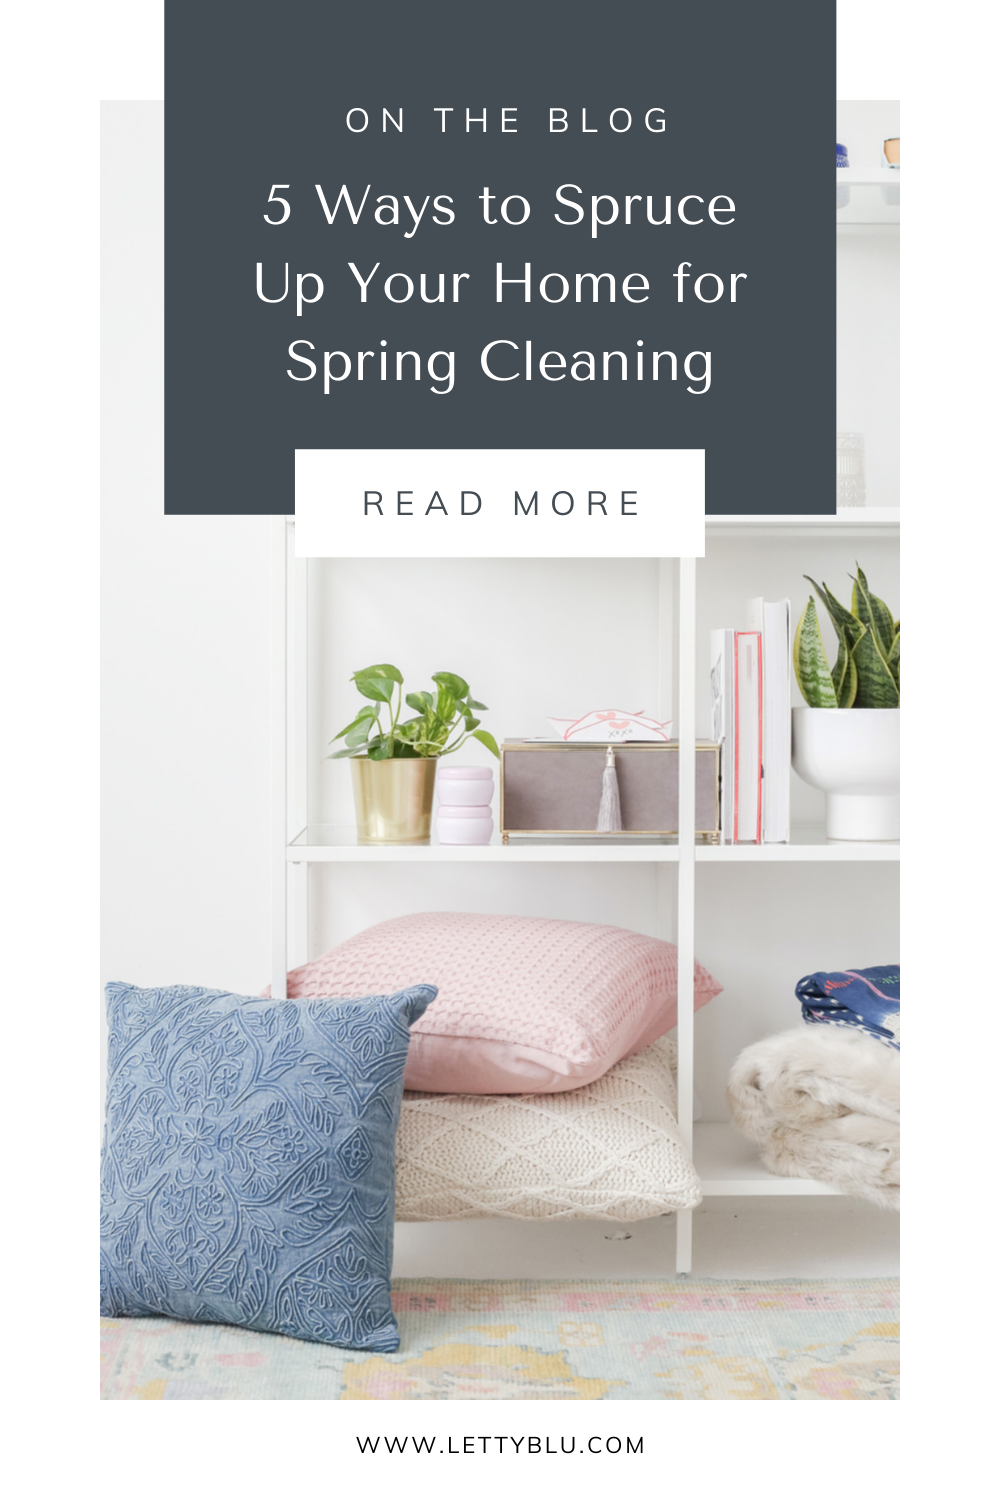 5 ways to spruce up your home for spring cleaning